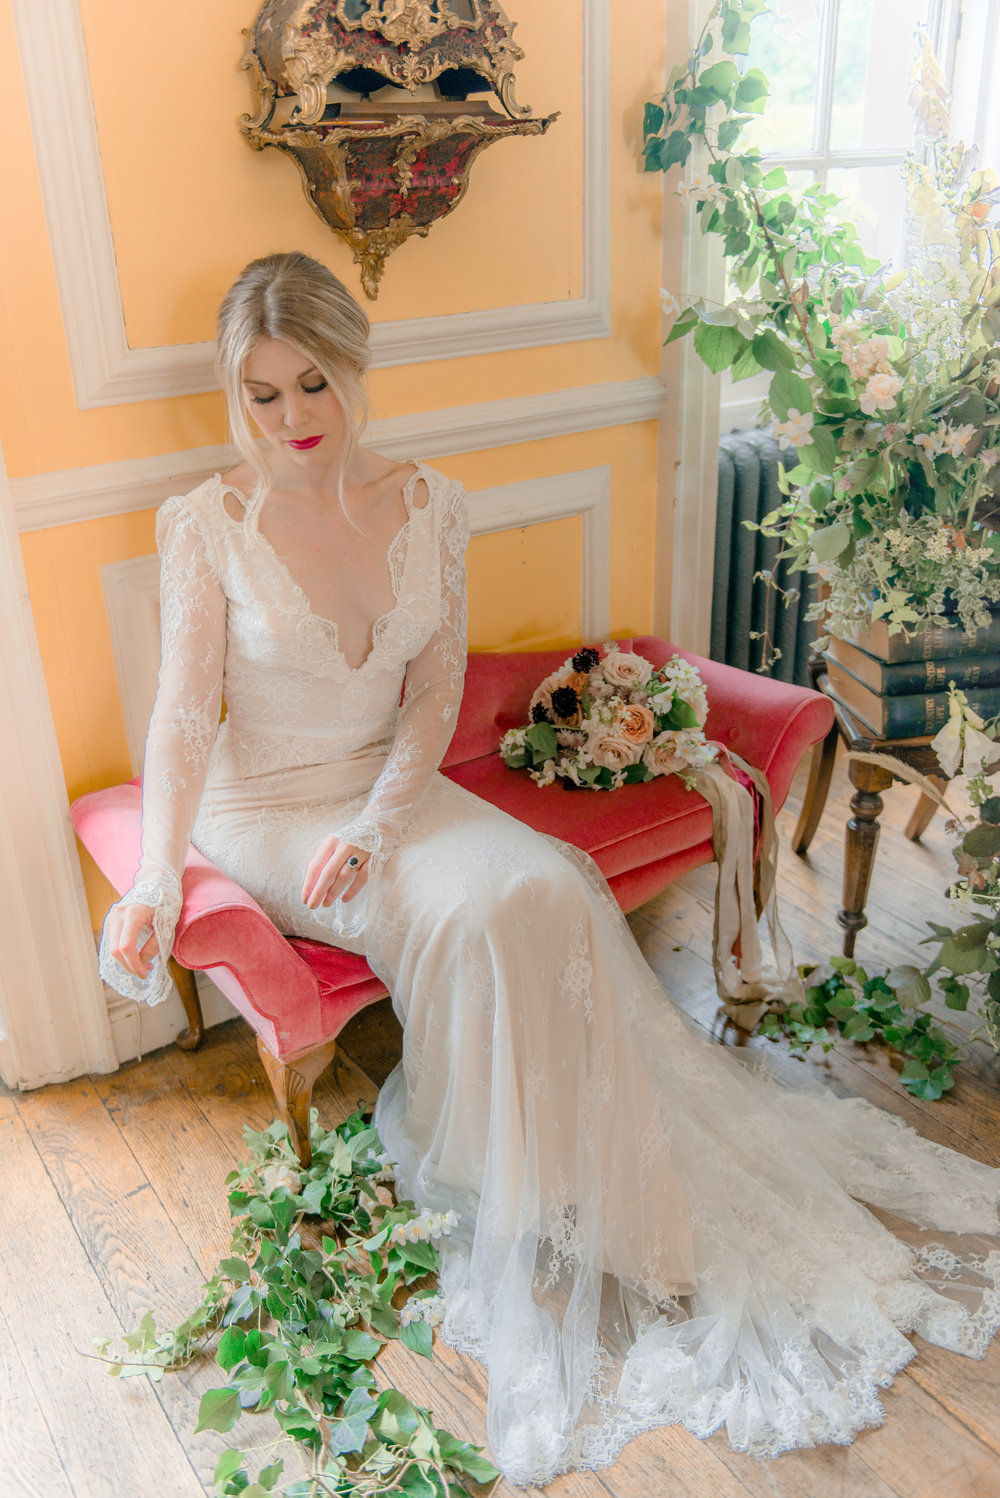 The Timeless Stylist-Elegant and Romantic Wedding Styling-Bride Waiting for Her Groom